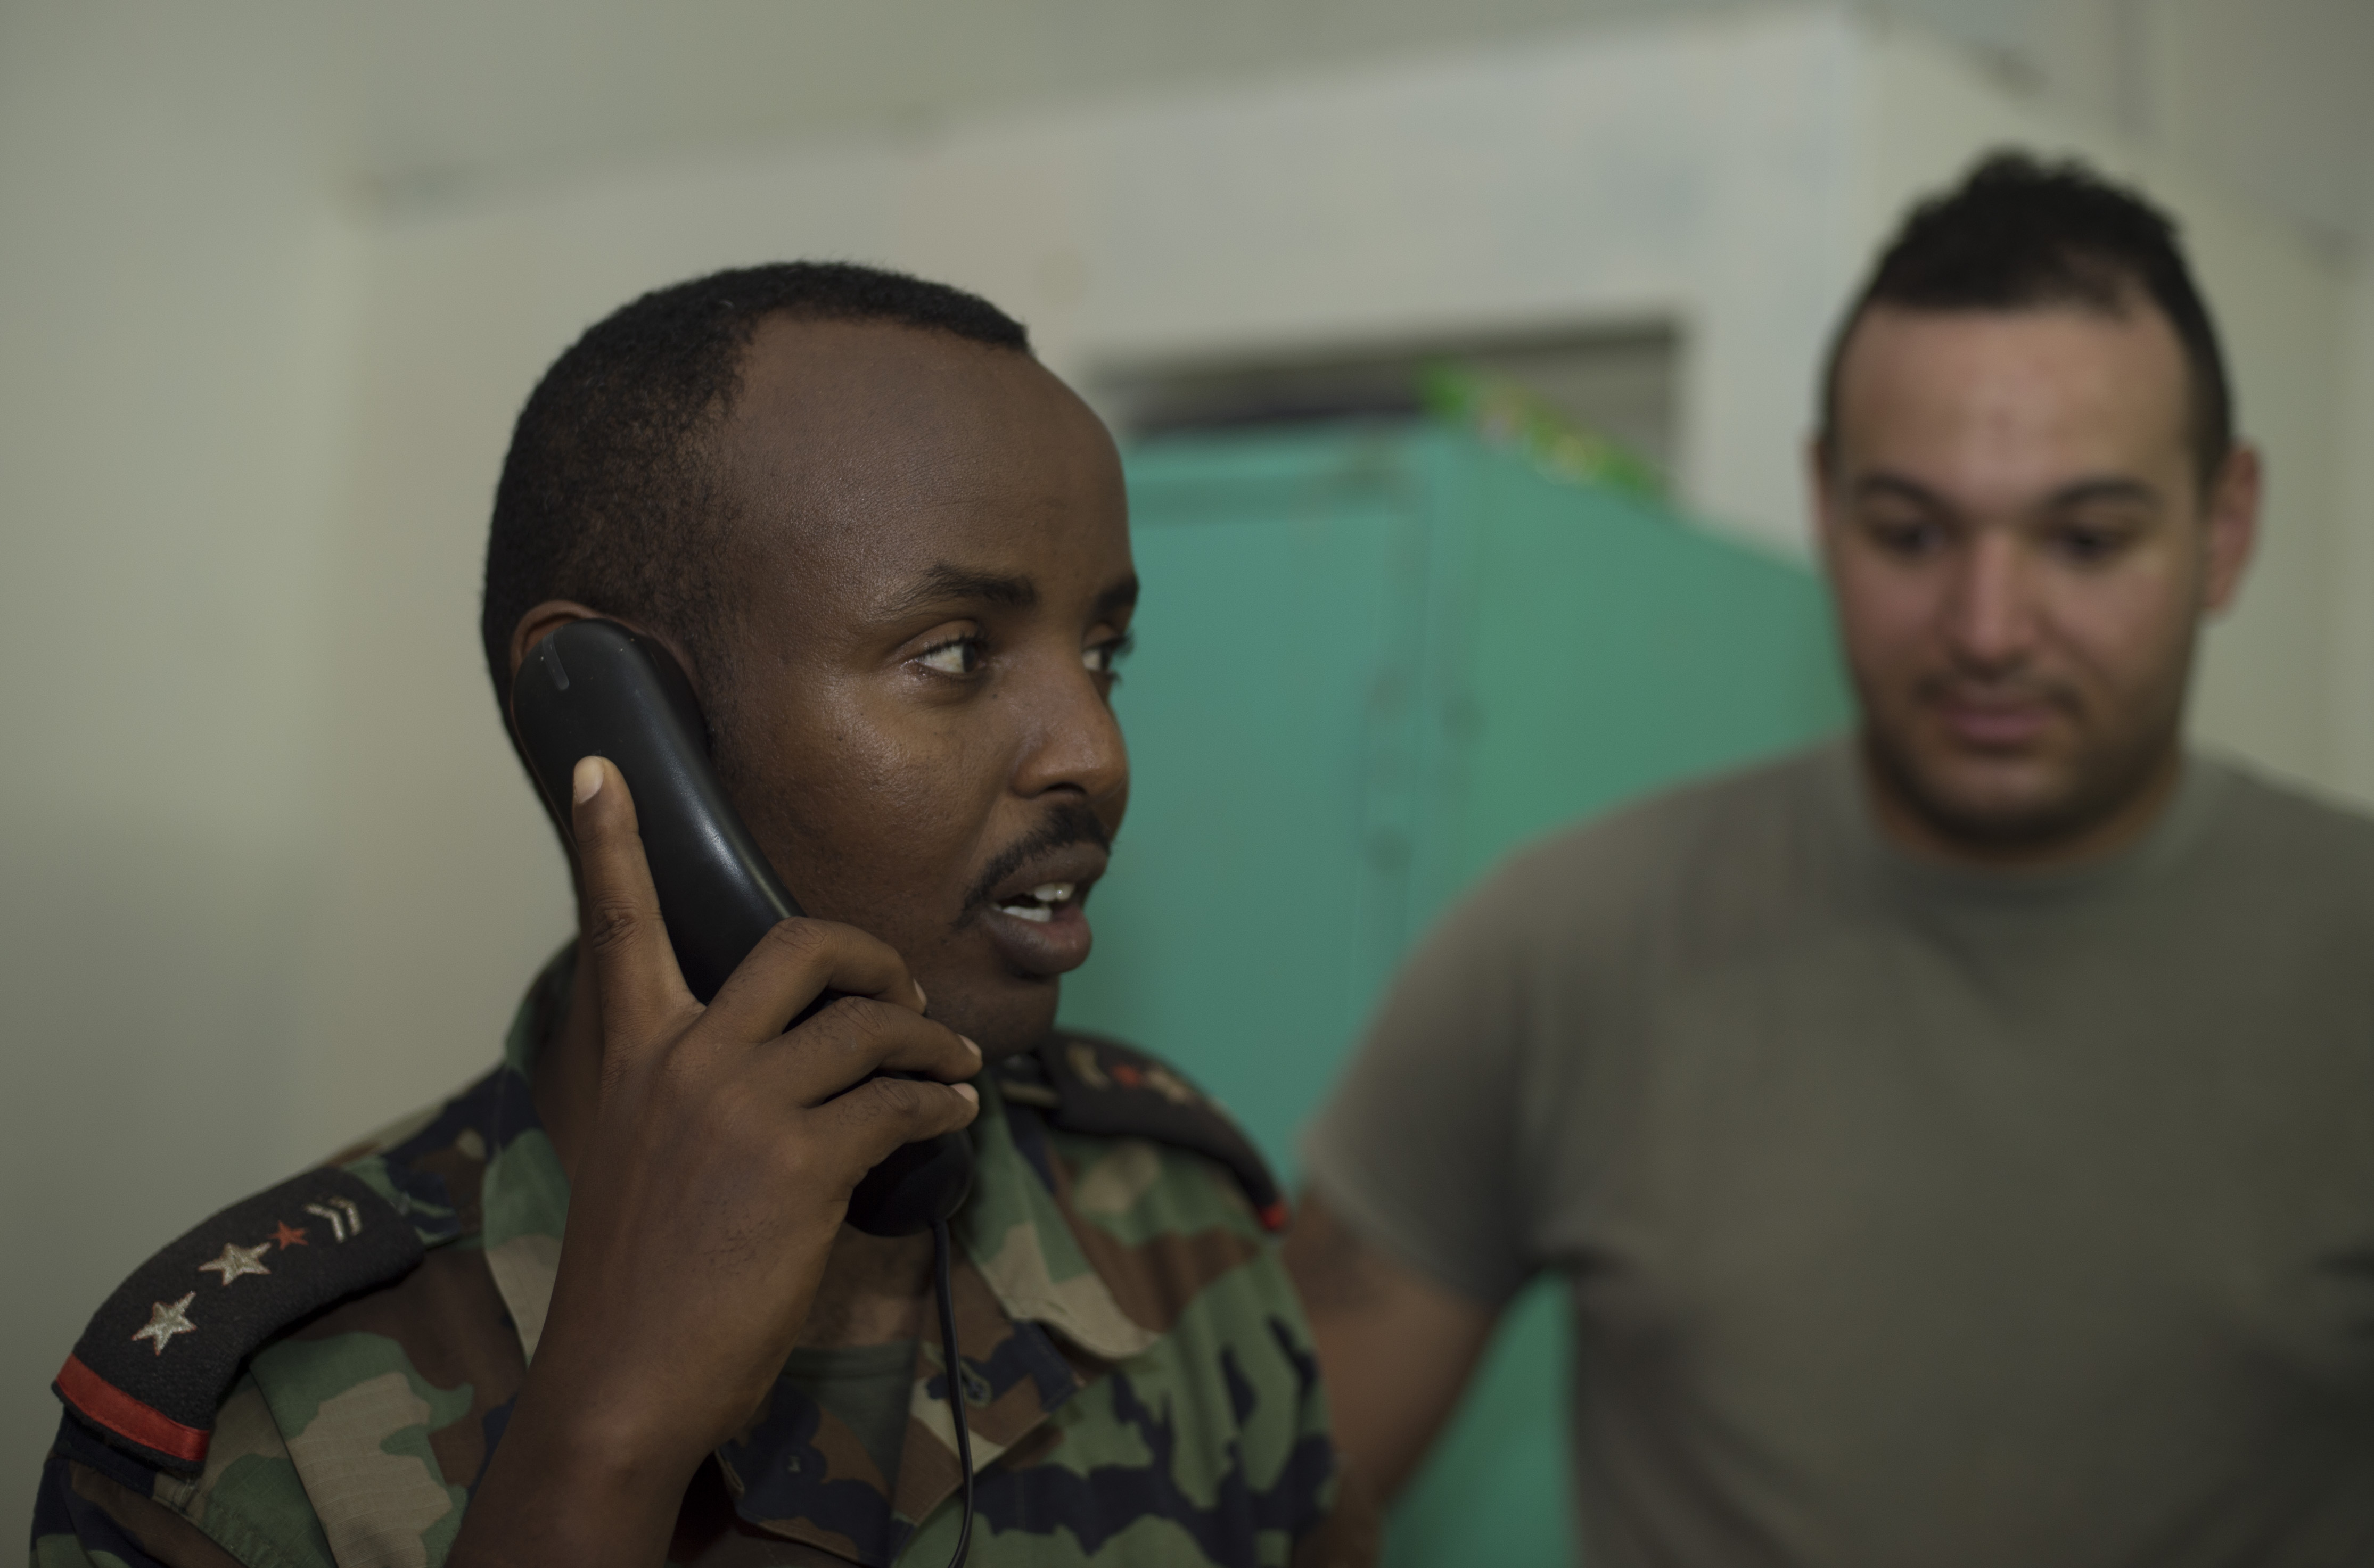 A Djibouti Armed Forces service member places a call to confirm connectivity of a Voice over Internet Protocol phone during validation training Sept. 28, 2016, at FAD Headquarters in Djibouti.  While conducting the best practices training, the U.S. Army technicians assigned to Combined Joint Task-Horn of Africa also held an Africa Data Sharing Network validation with the FAD soldiers, to prepare them to deploy to Somalia.  The ADSN provides network and Voice over Internet Protocol capabilities between the several African countries participating in the Africa Union Mission in Somalia. (U.S. Air Force photo by Staff Sgt. Eric Summers Jr.)